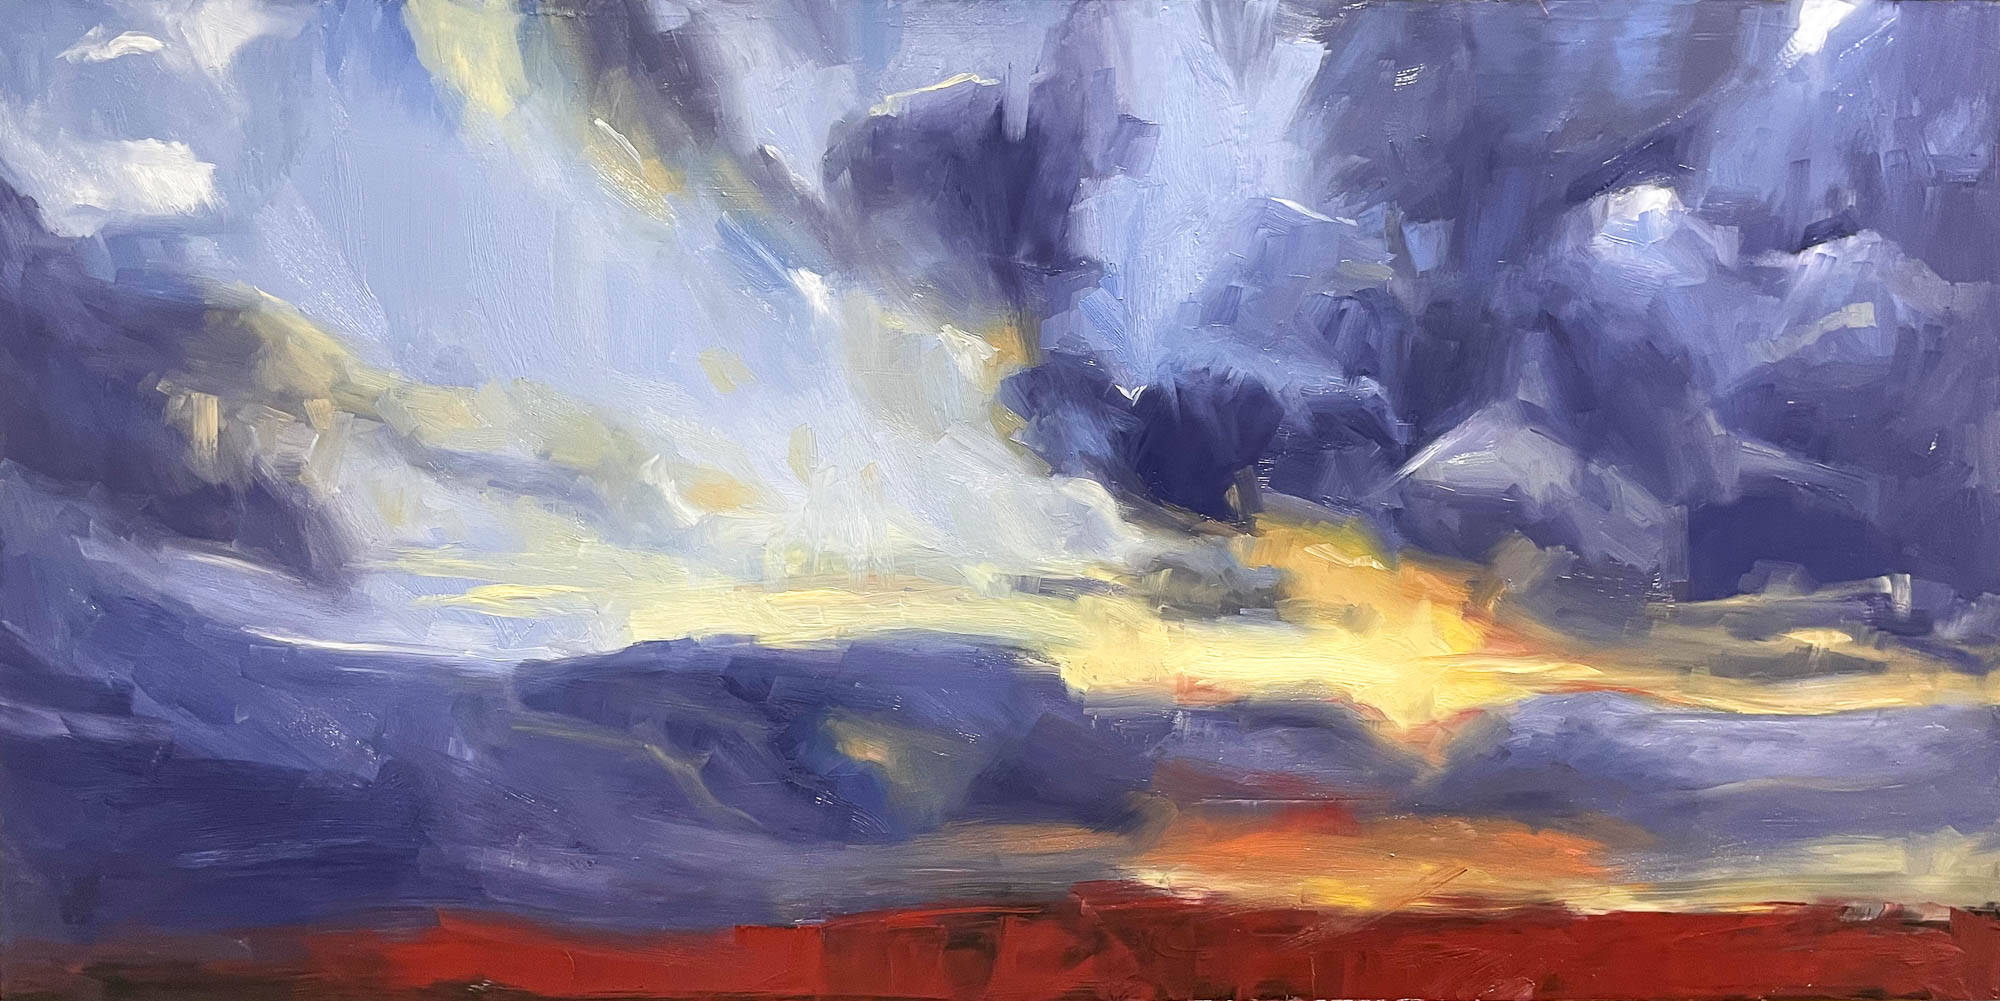 Sunrise 04, 2021, Oil on Panel, 24x36 inches